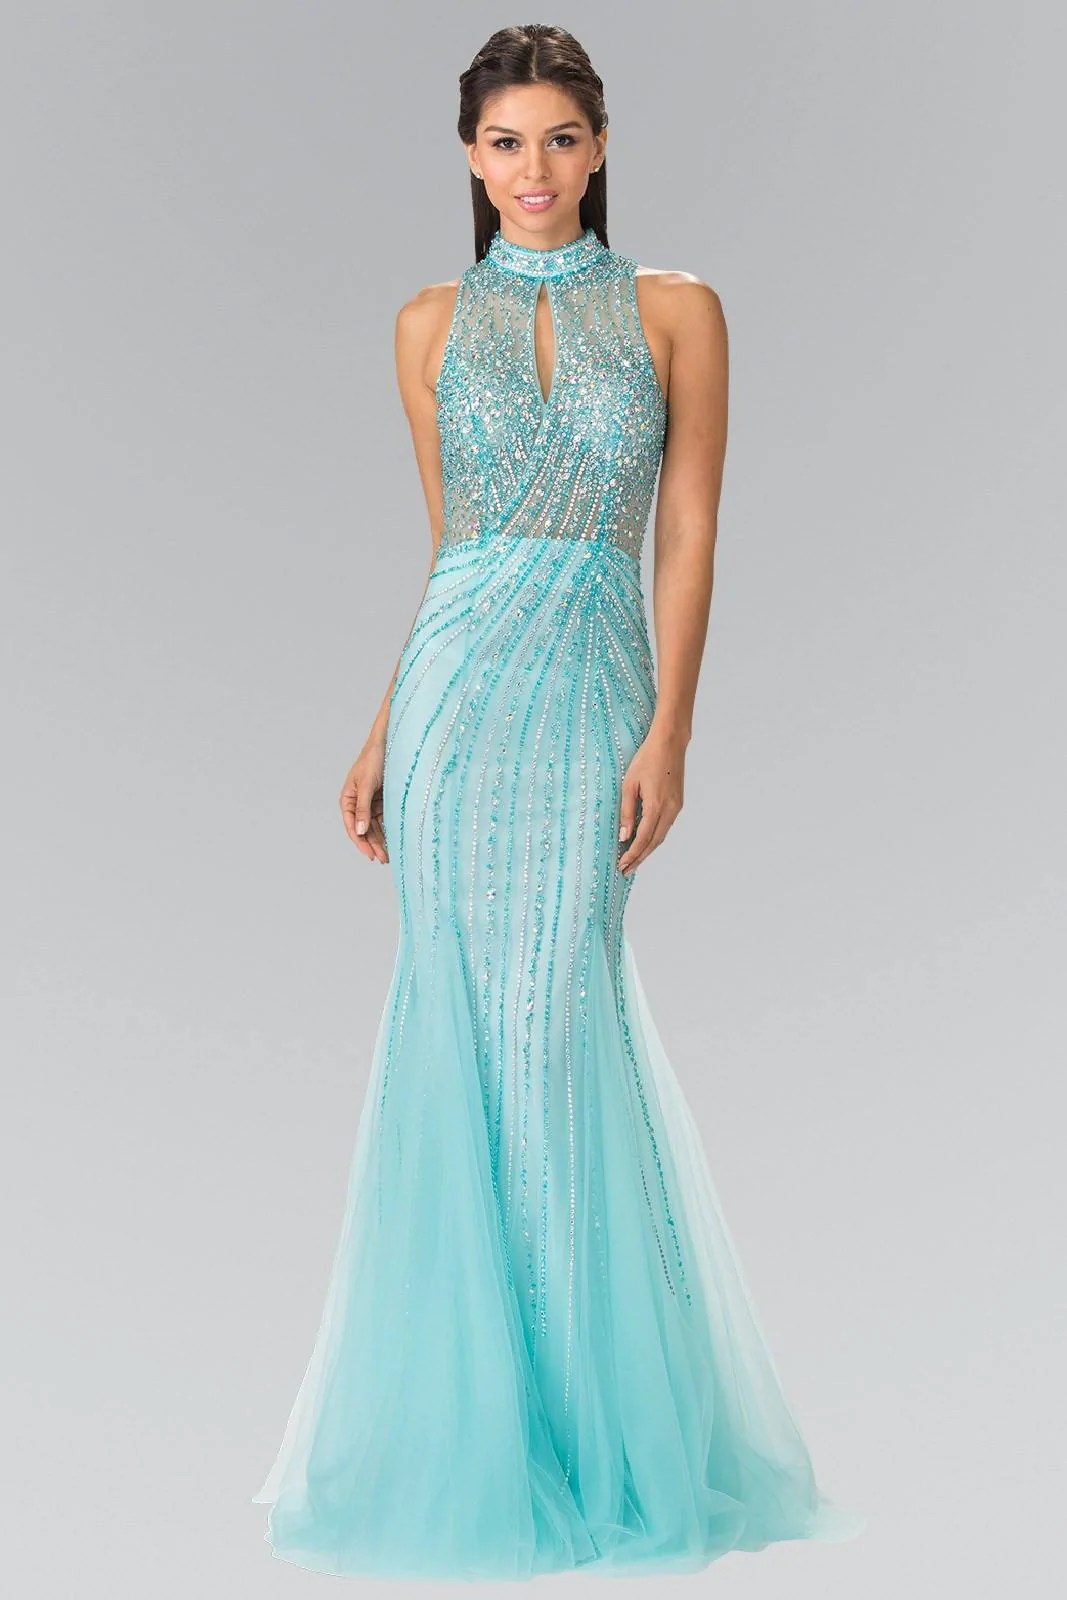 Sexy Prom Dresses- Gorgeous Full Sequins Mermaid